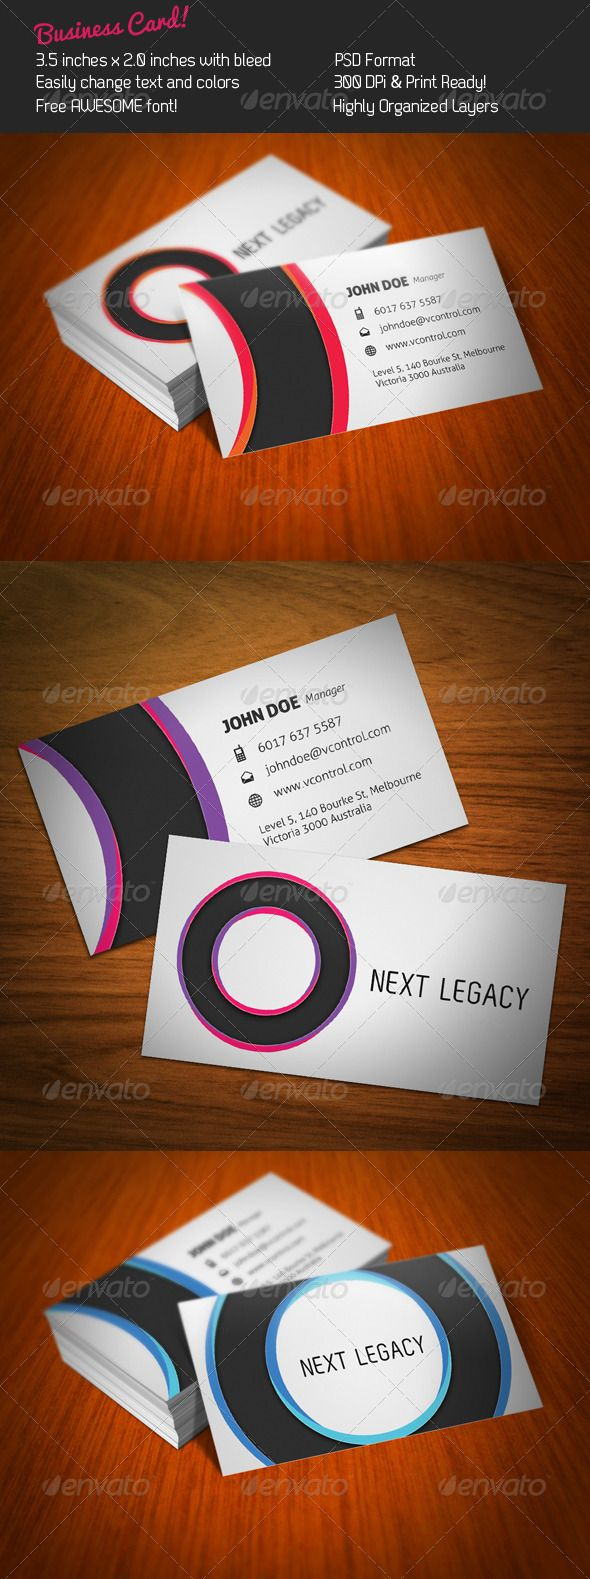 10 Best Business Card Ideas Images On Pinterest Card Ideas Cards